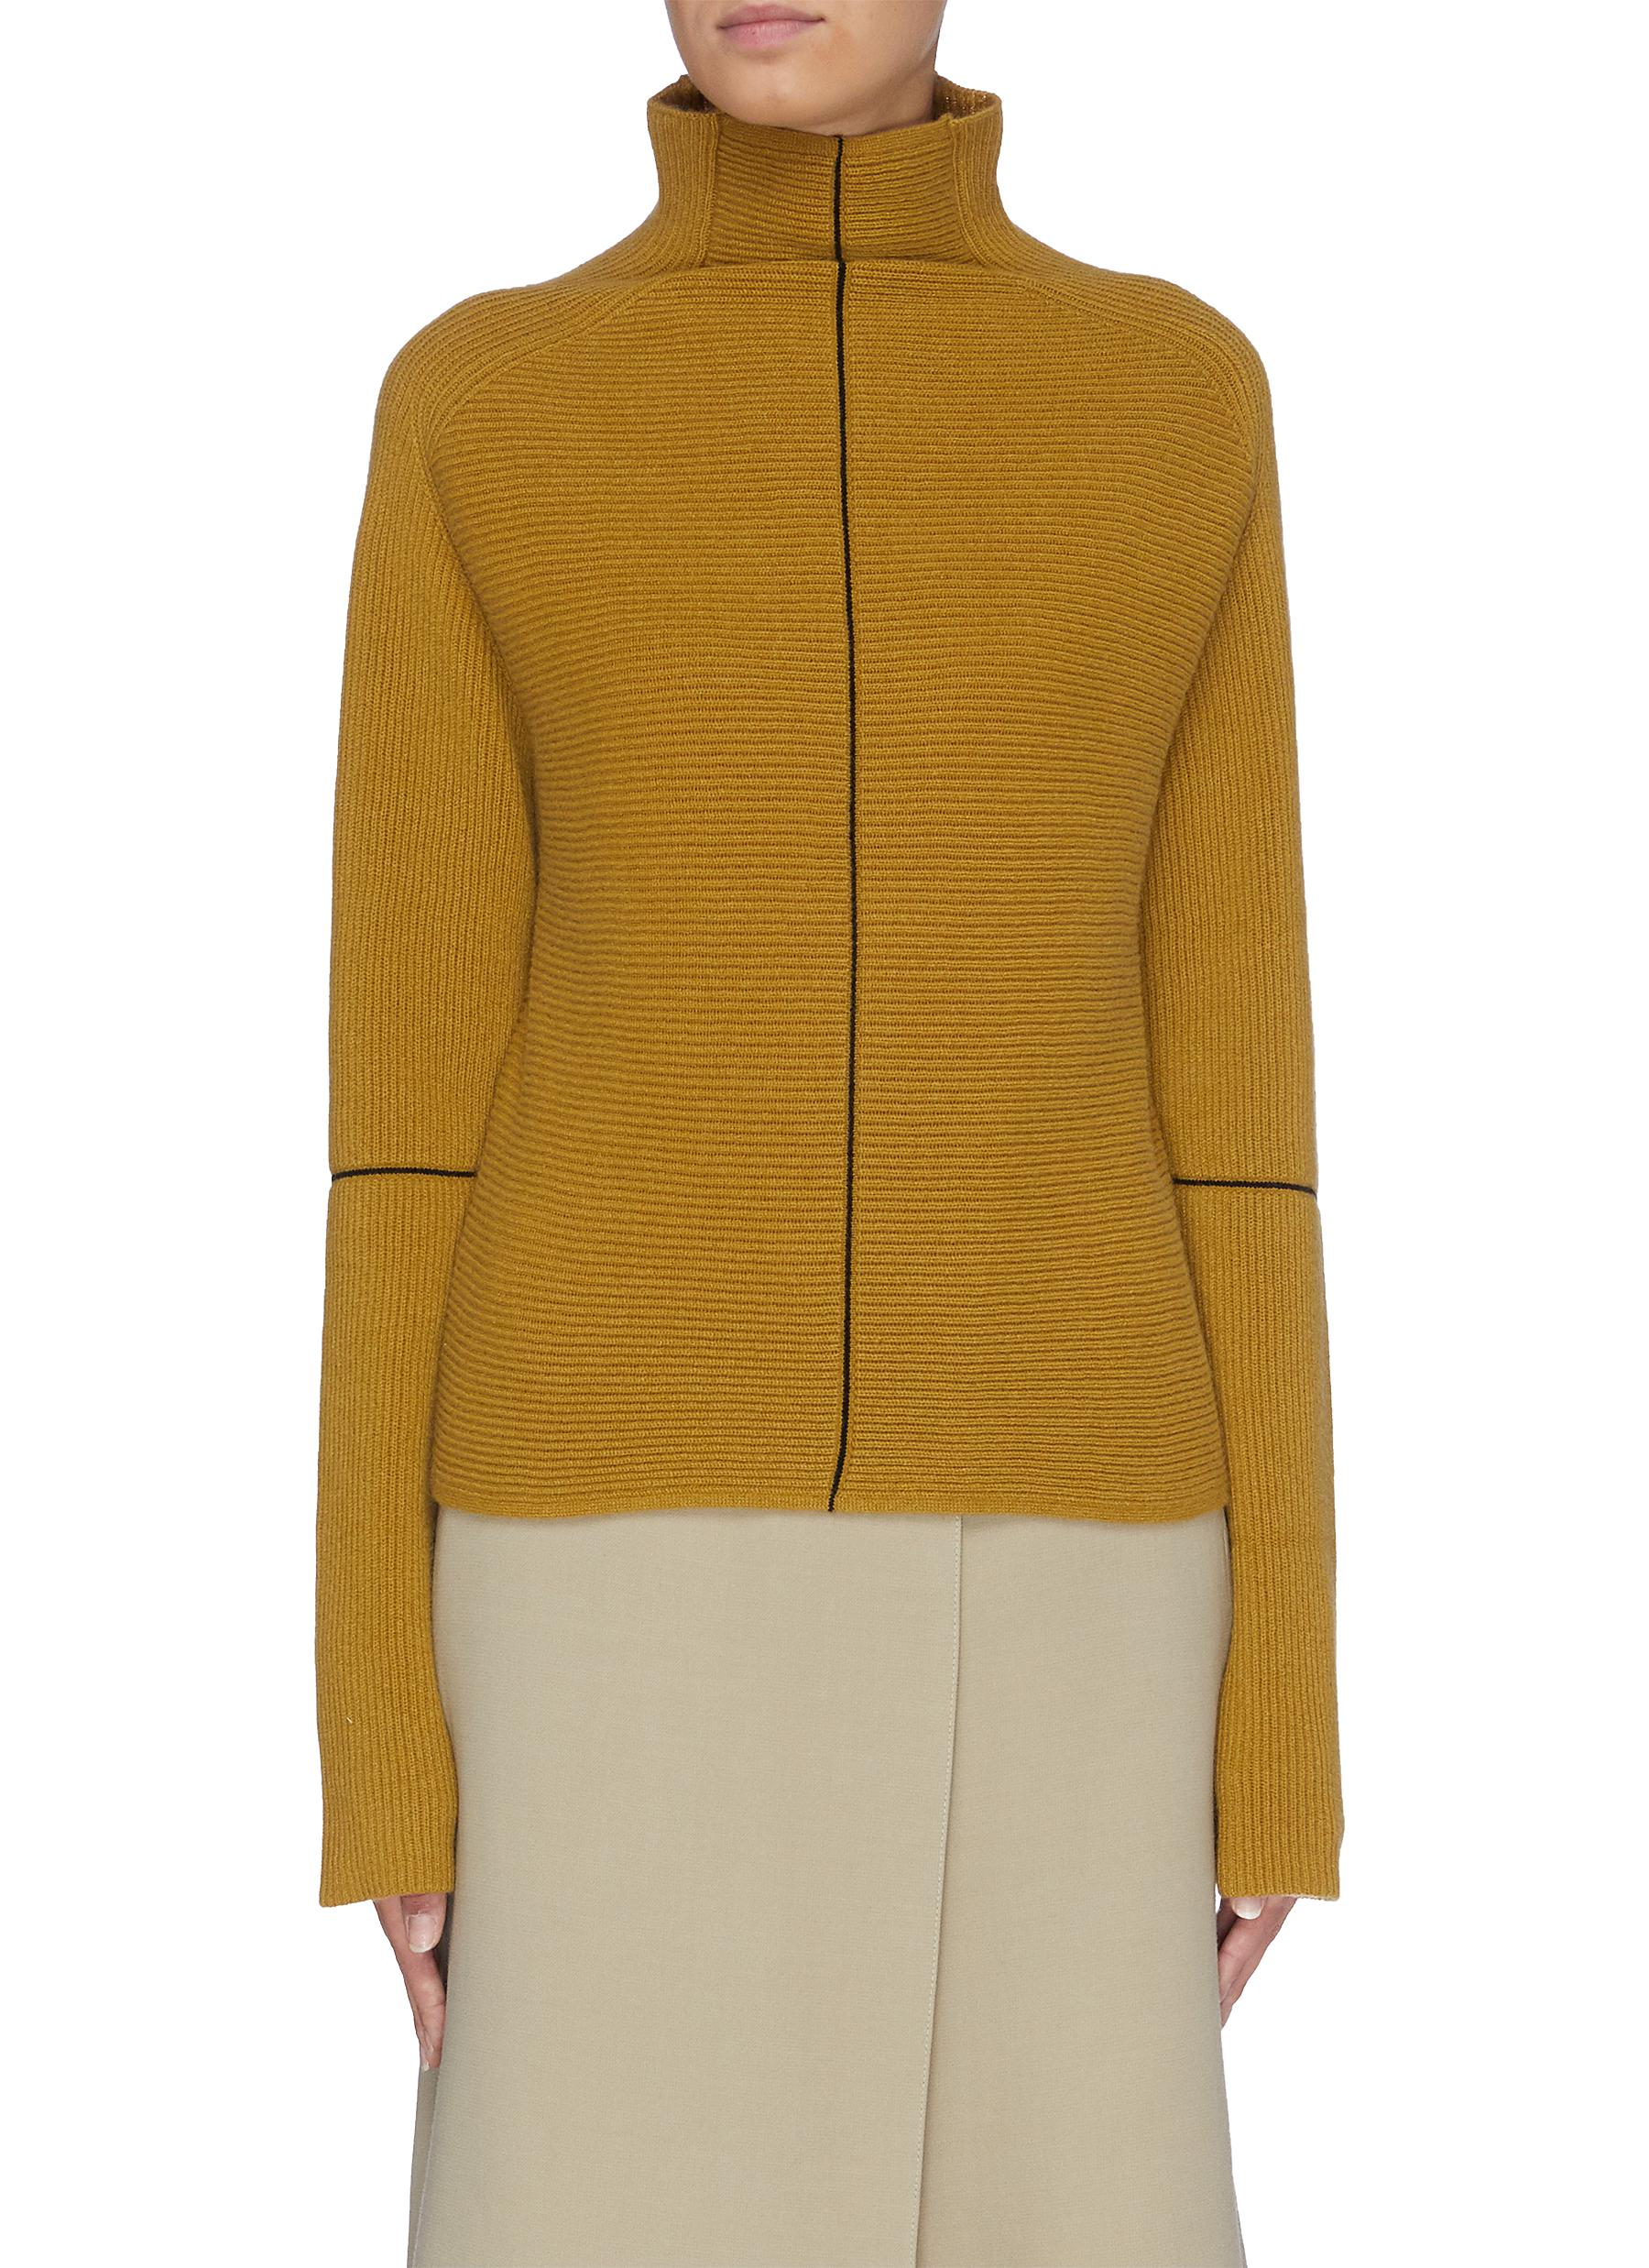 Panelled rib knit high neck sweater by Petar Petrov